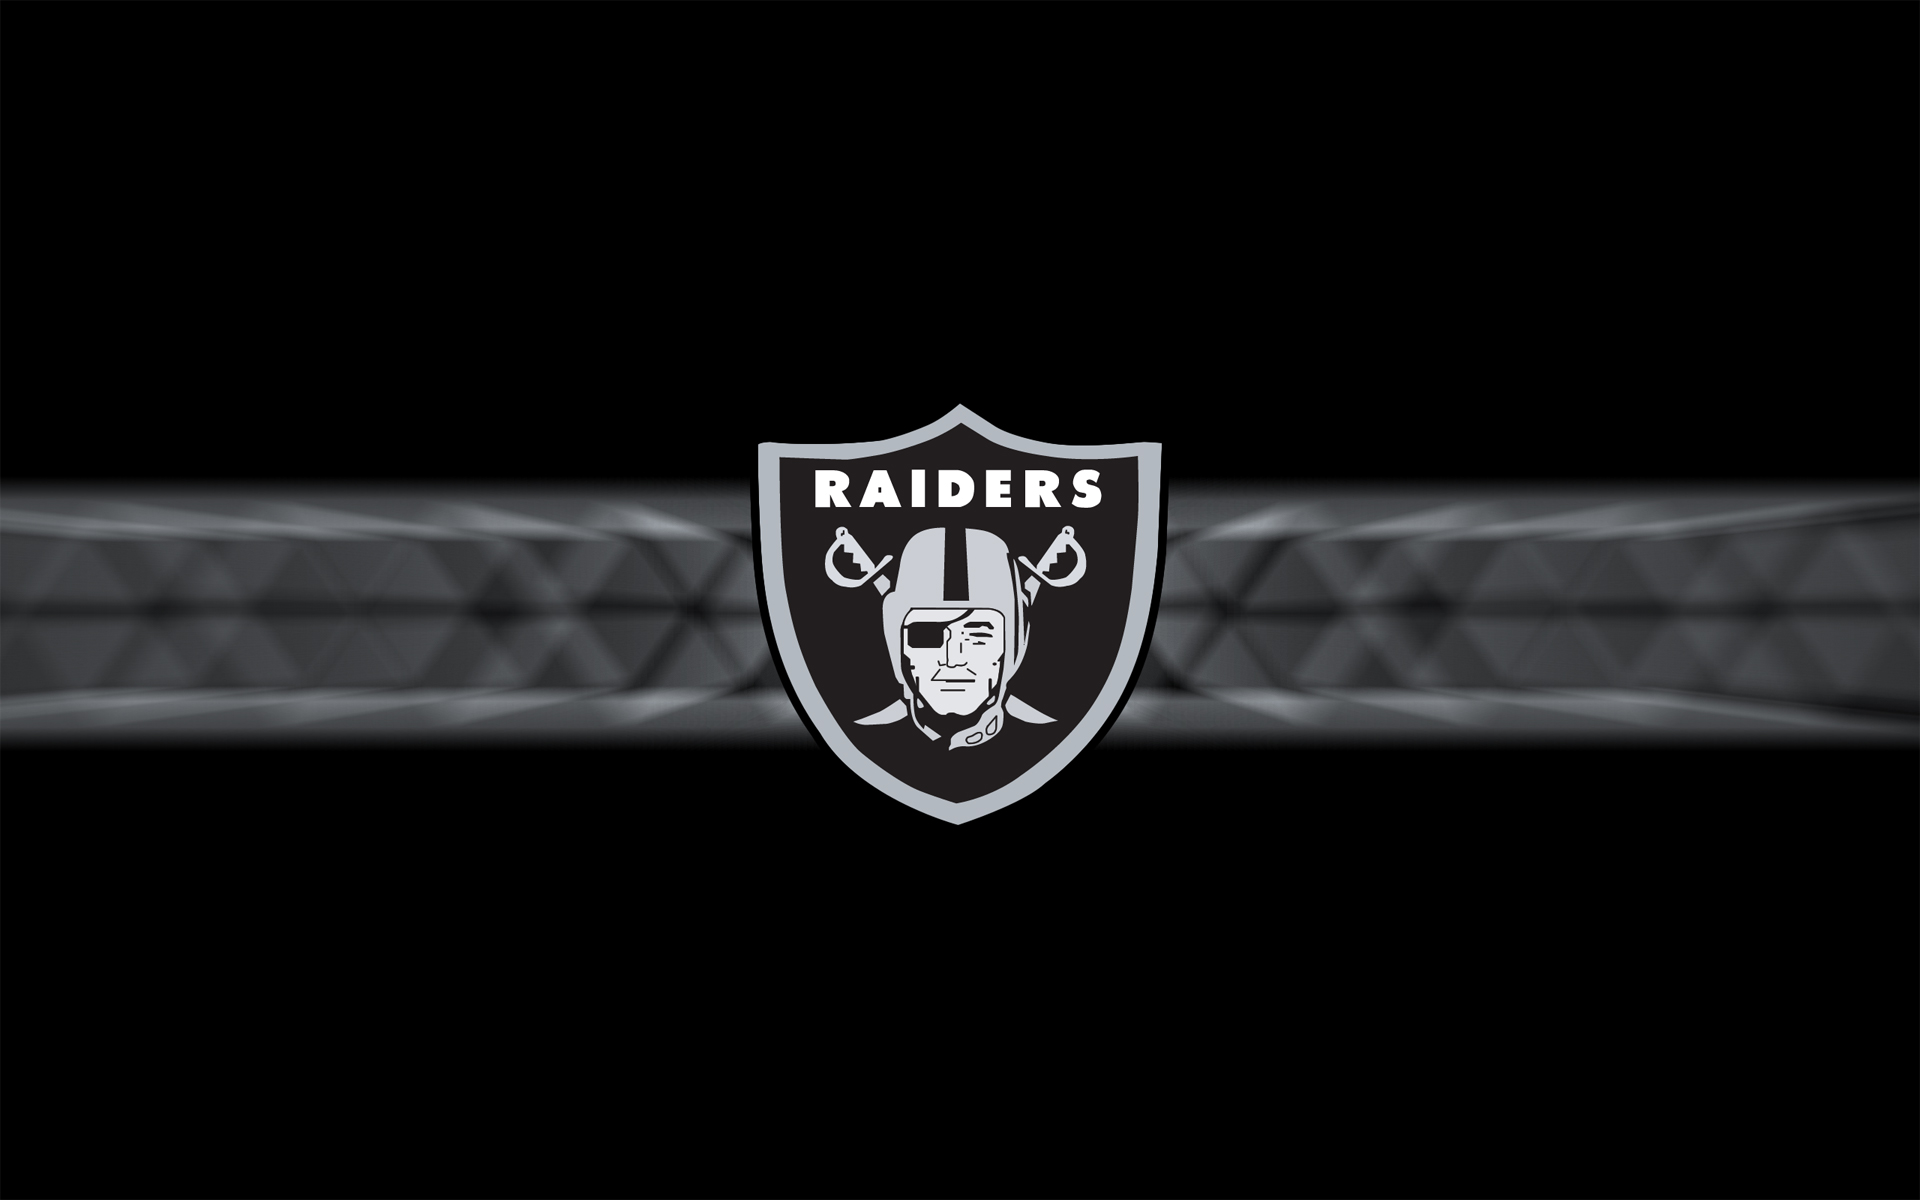 Oakland Raiders Wide Wallpaper1920x1200 1920x1200